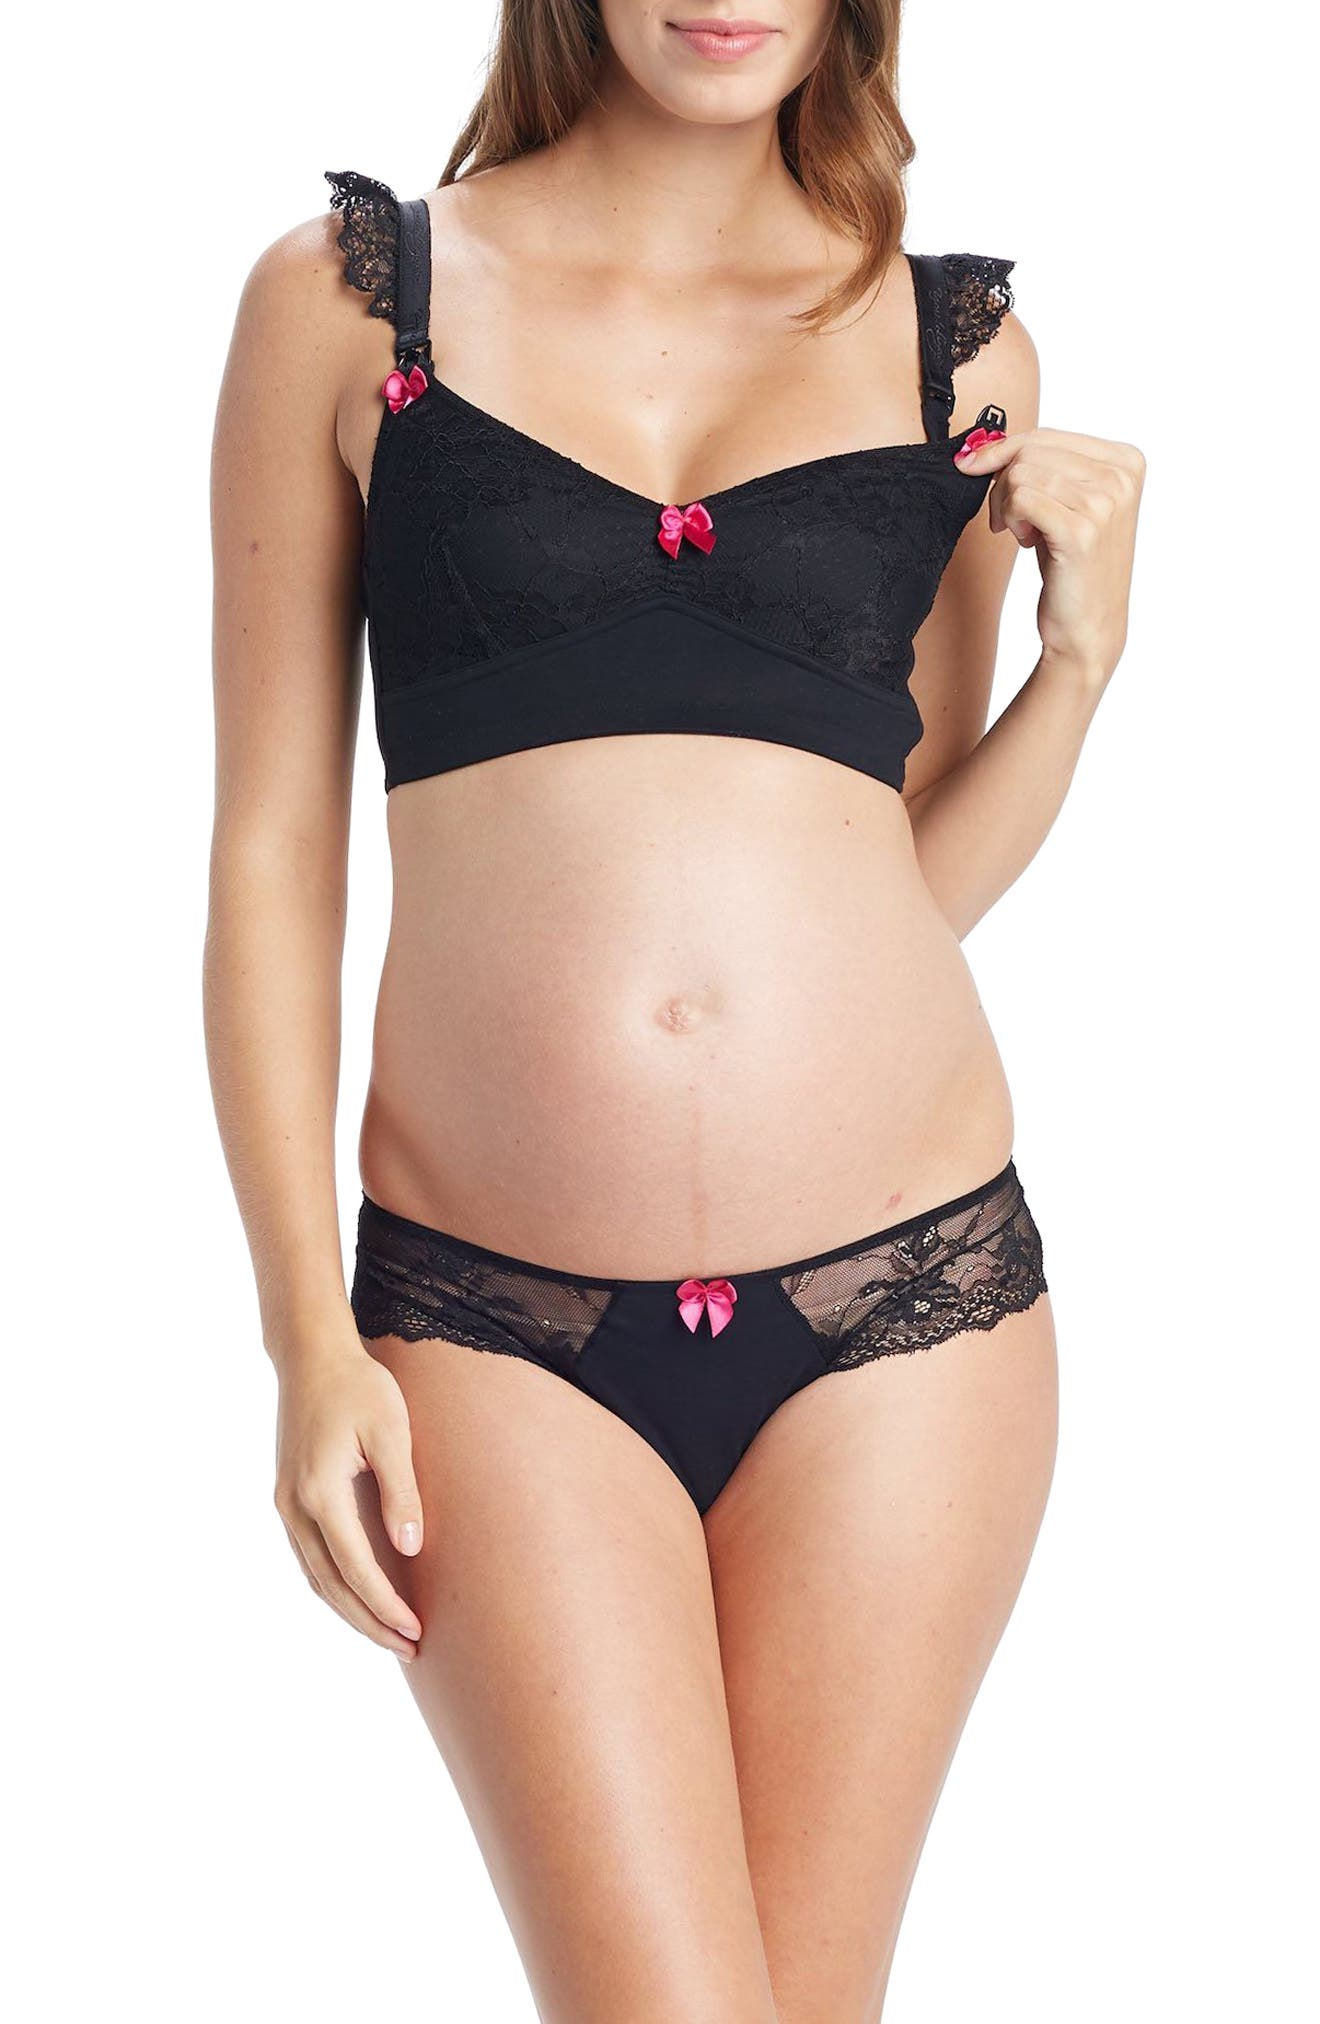 You! Lingerie Nova Lace Maternity Panties,                             Alternate thumbnail 4, color,                             Black